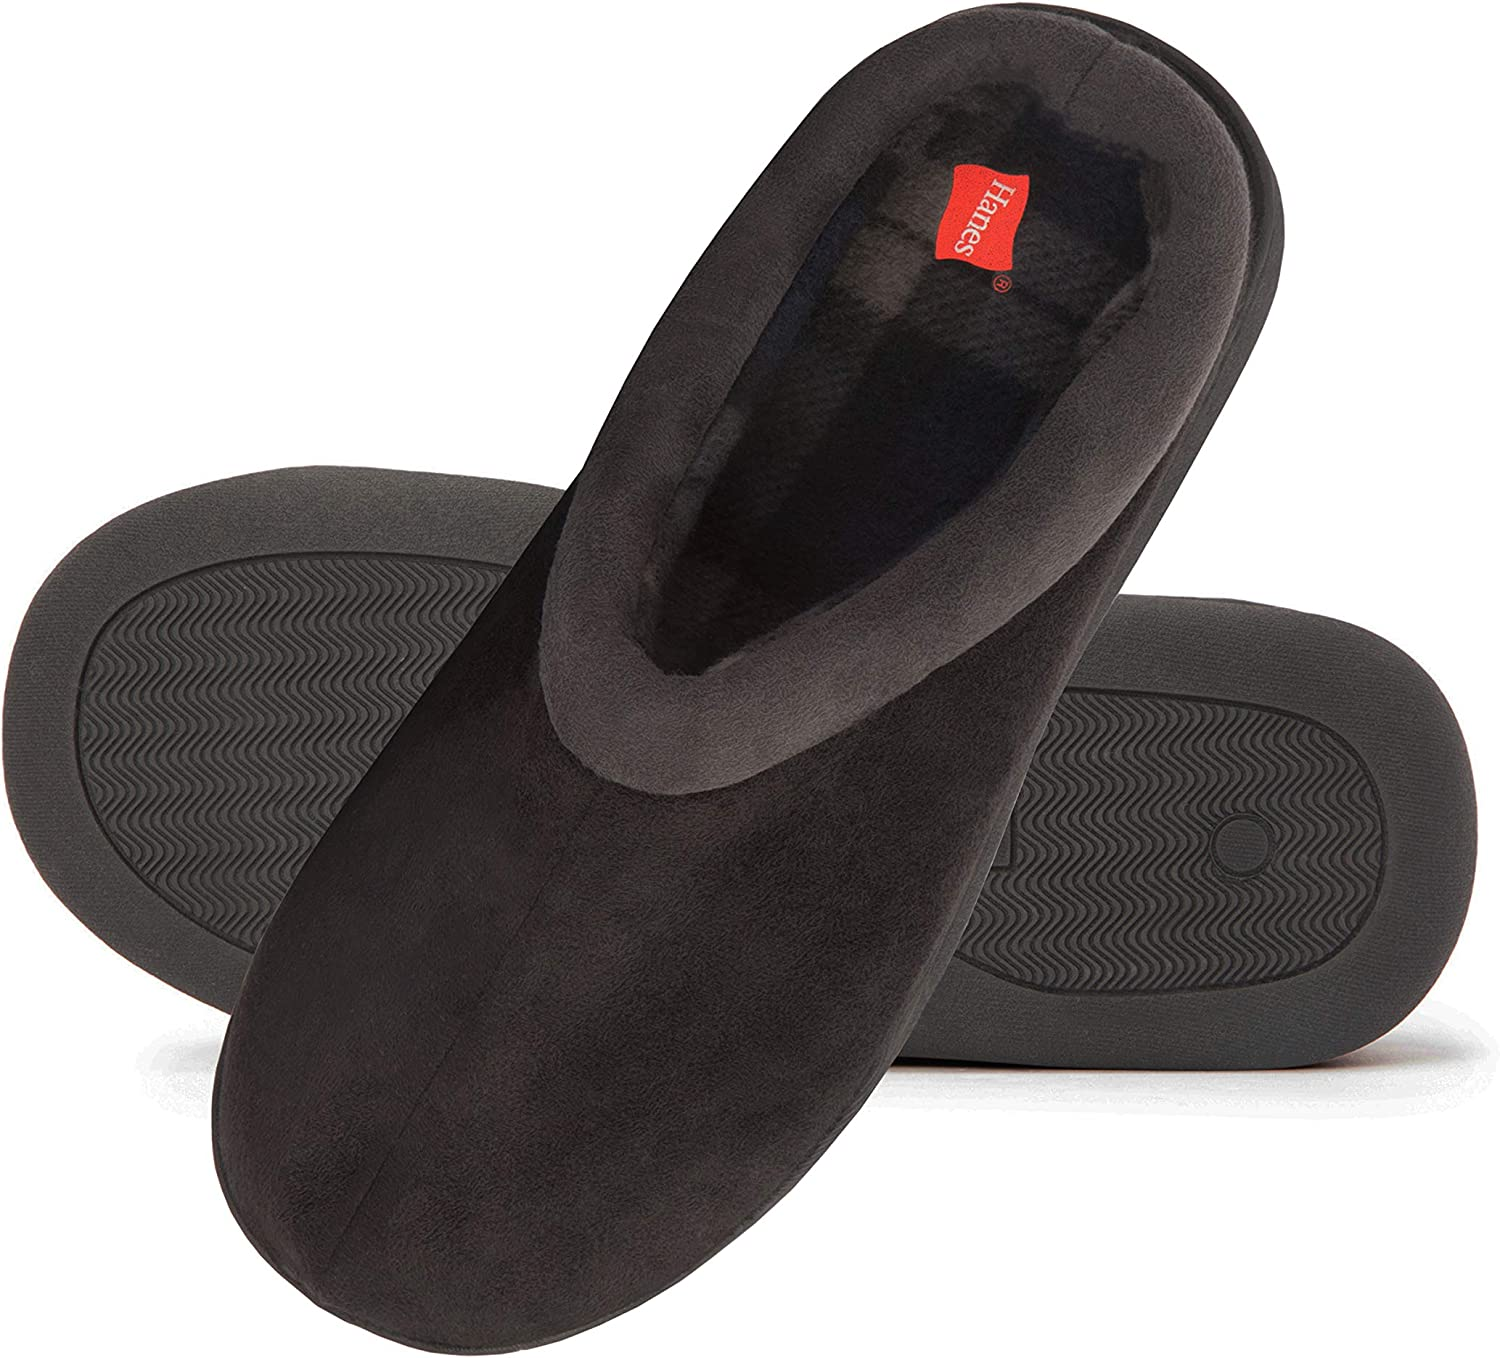 Hanes Men's Memory Foam Indoor Outdoor Microsuede Clog Slipper Shoe with Fresh Iq